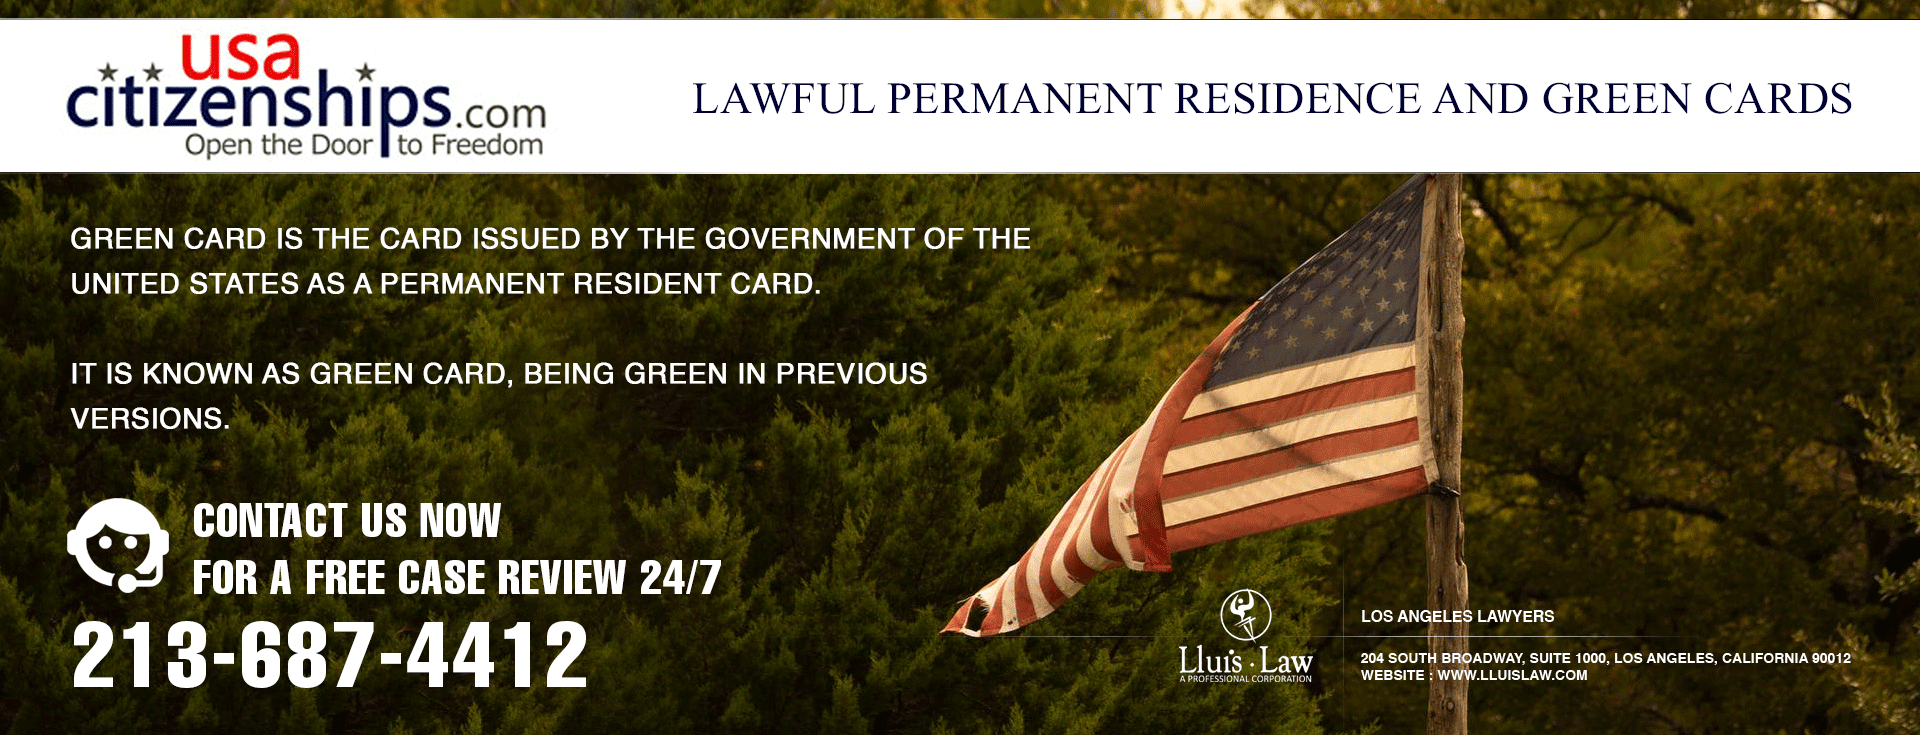 Lawful Permanent Residence and Green Cards